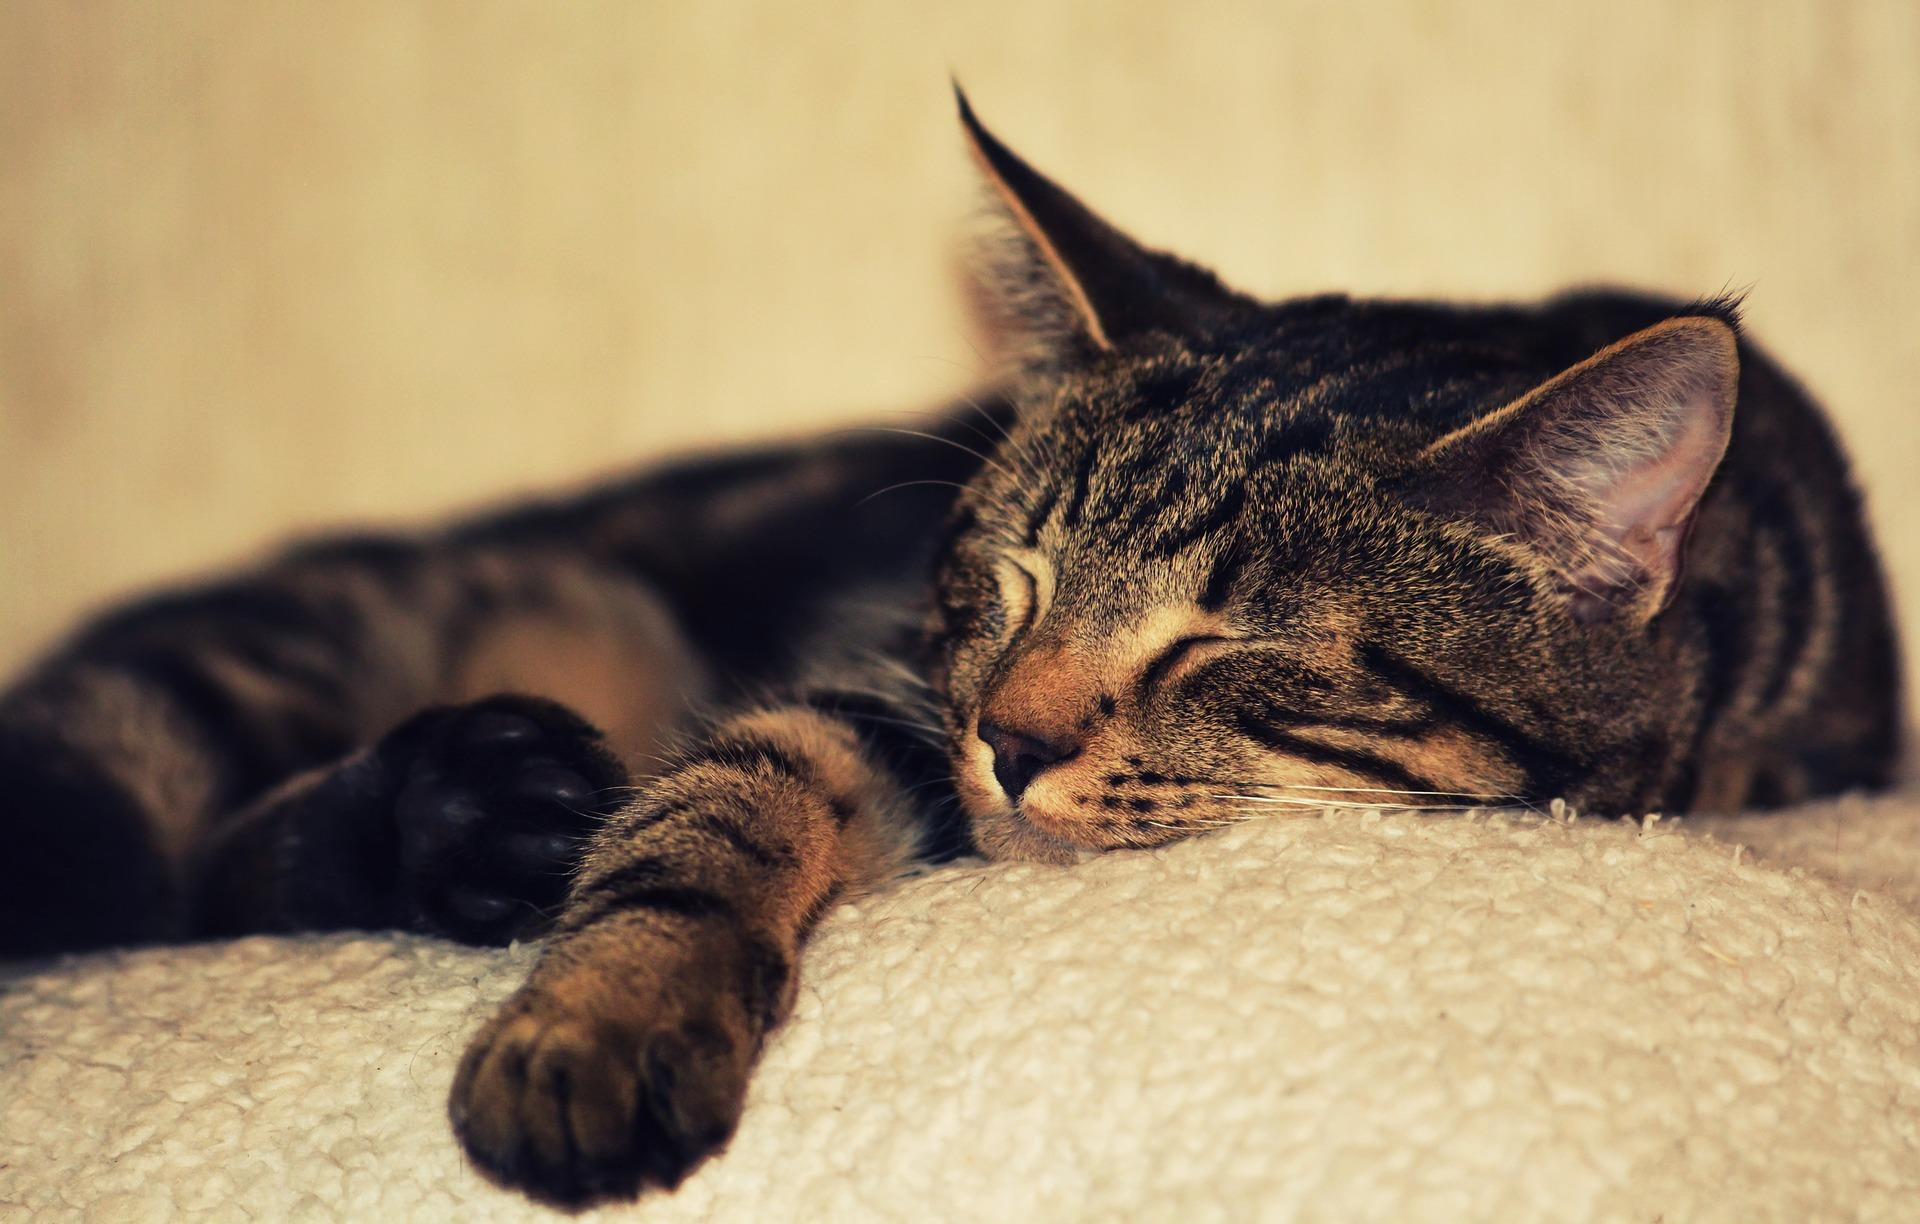 Should You Take That Cat Nap? The Sleep Link To Mental Health